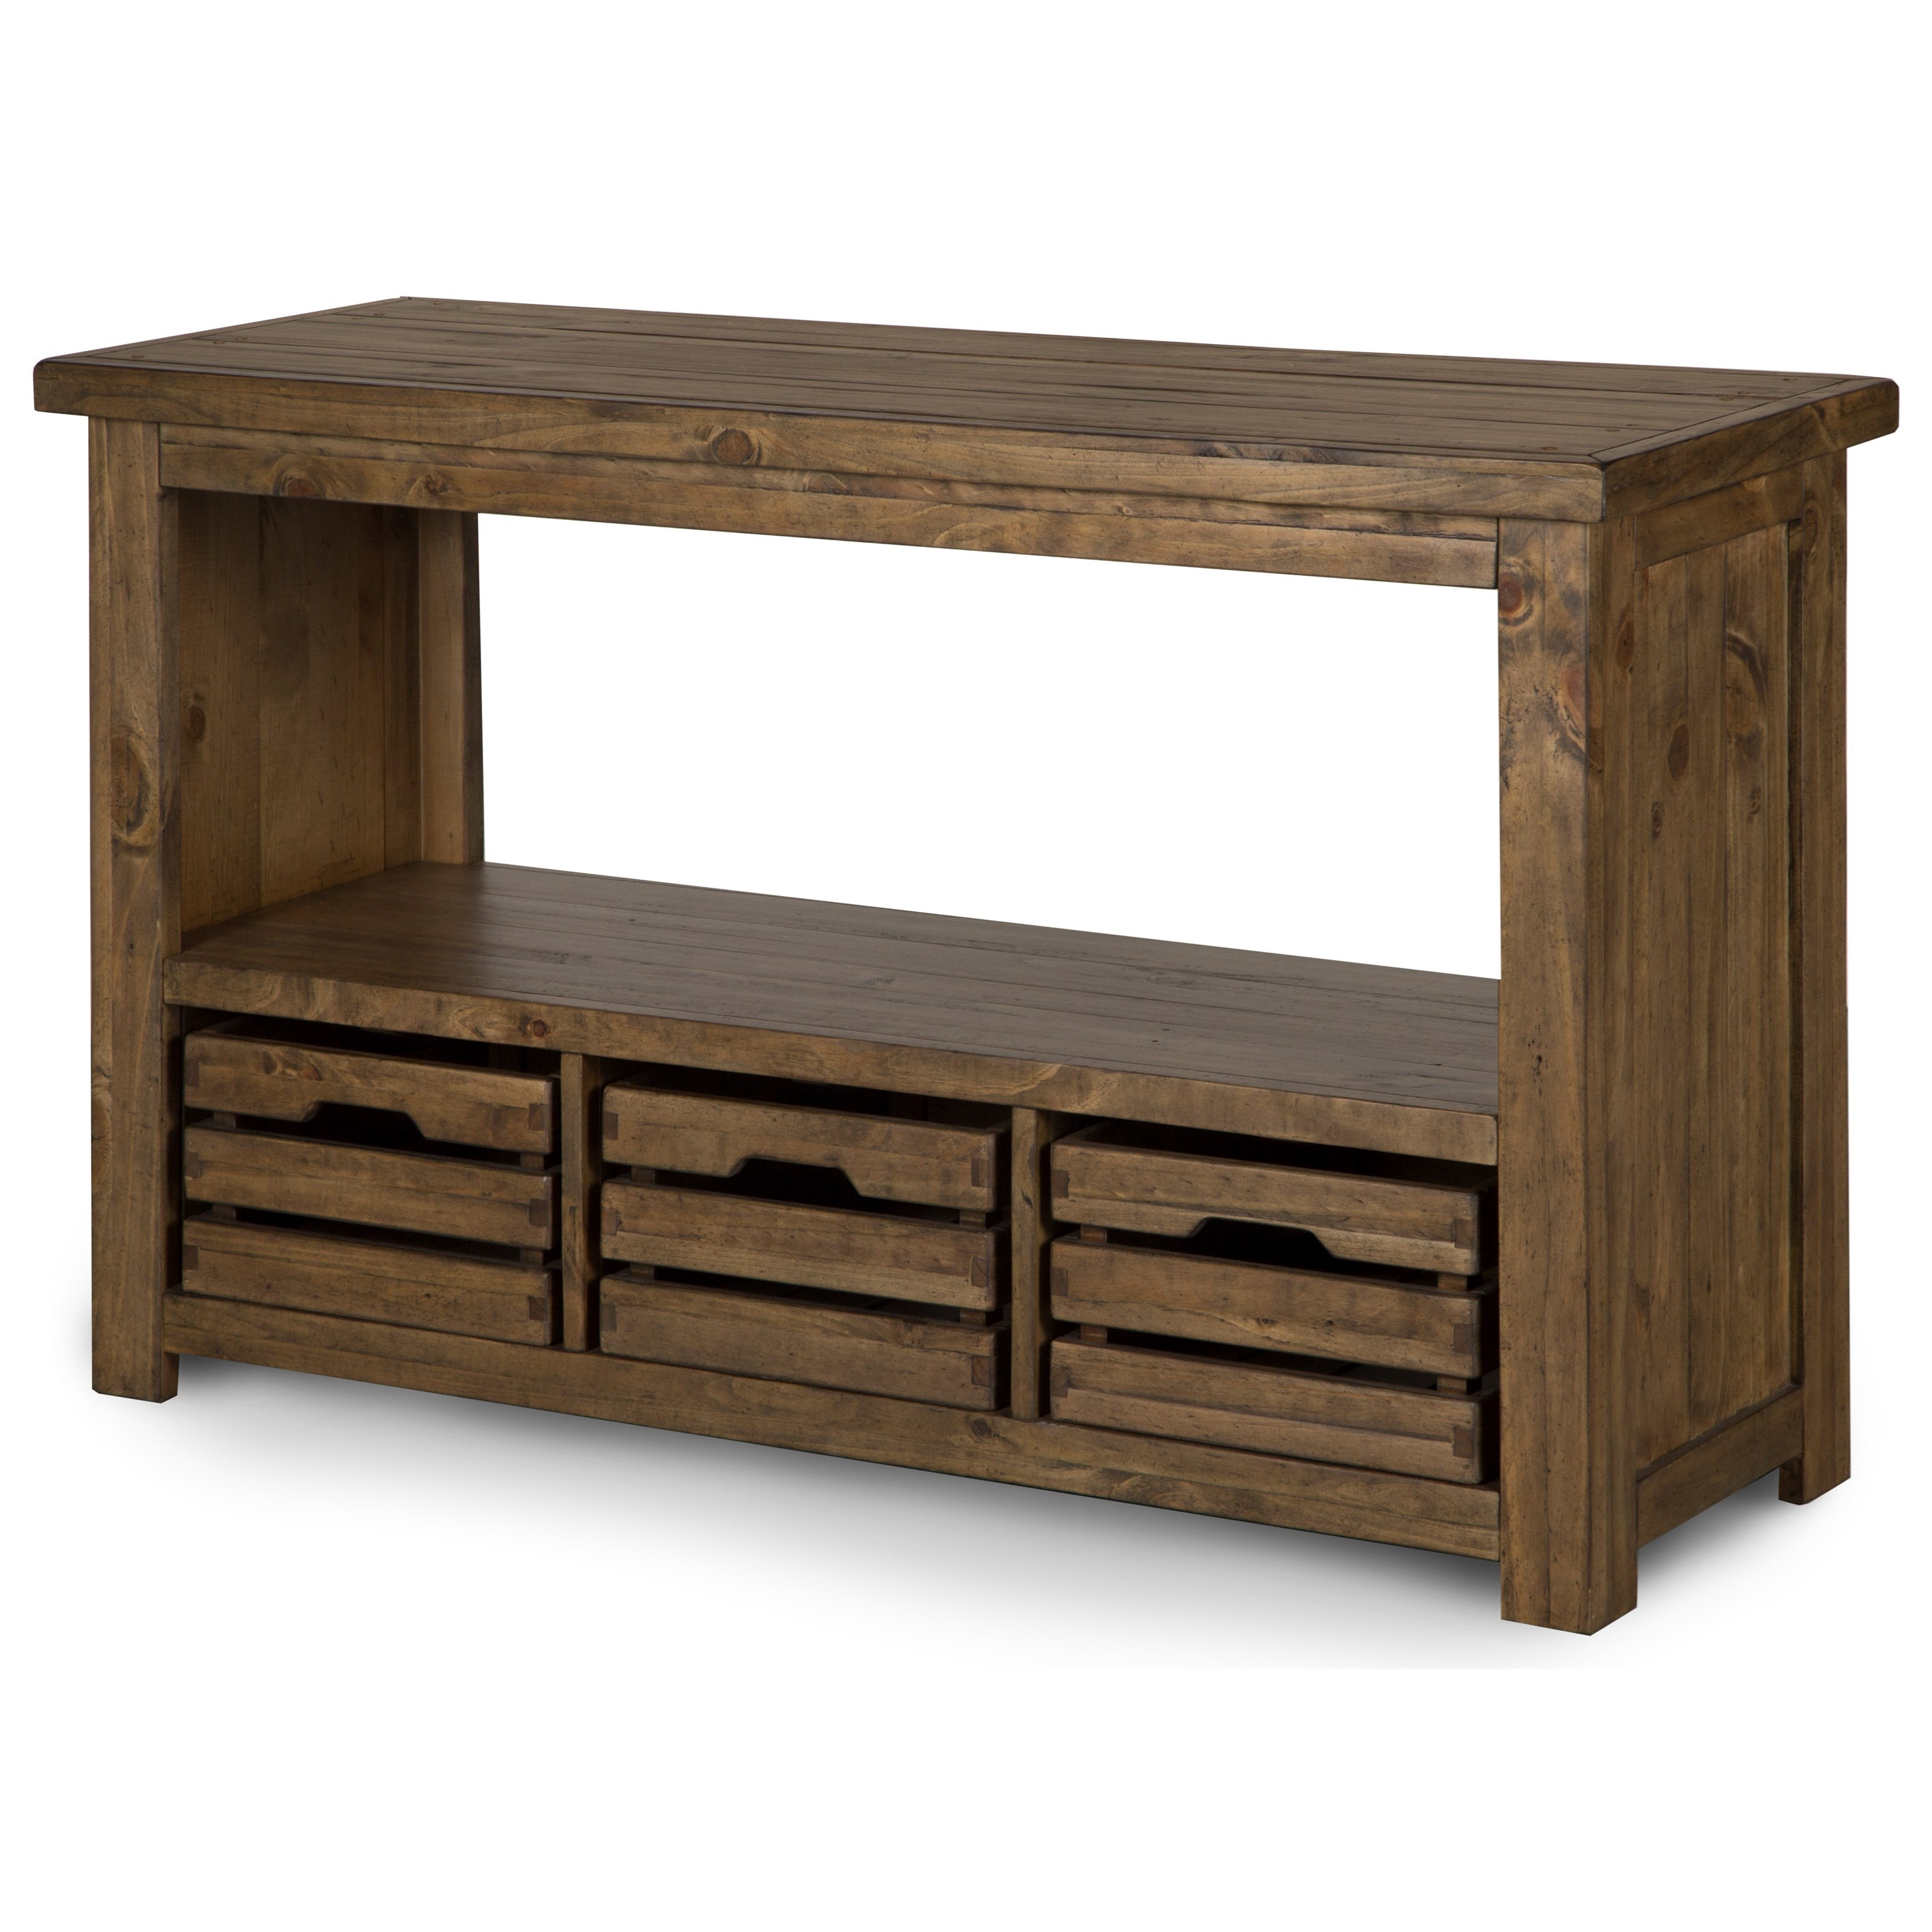 Stratton Rectangular Sofa Table by Magnussen Home at Darvin Furniture